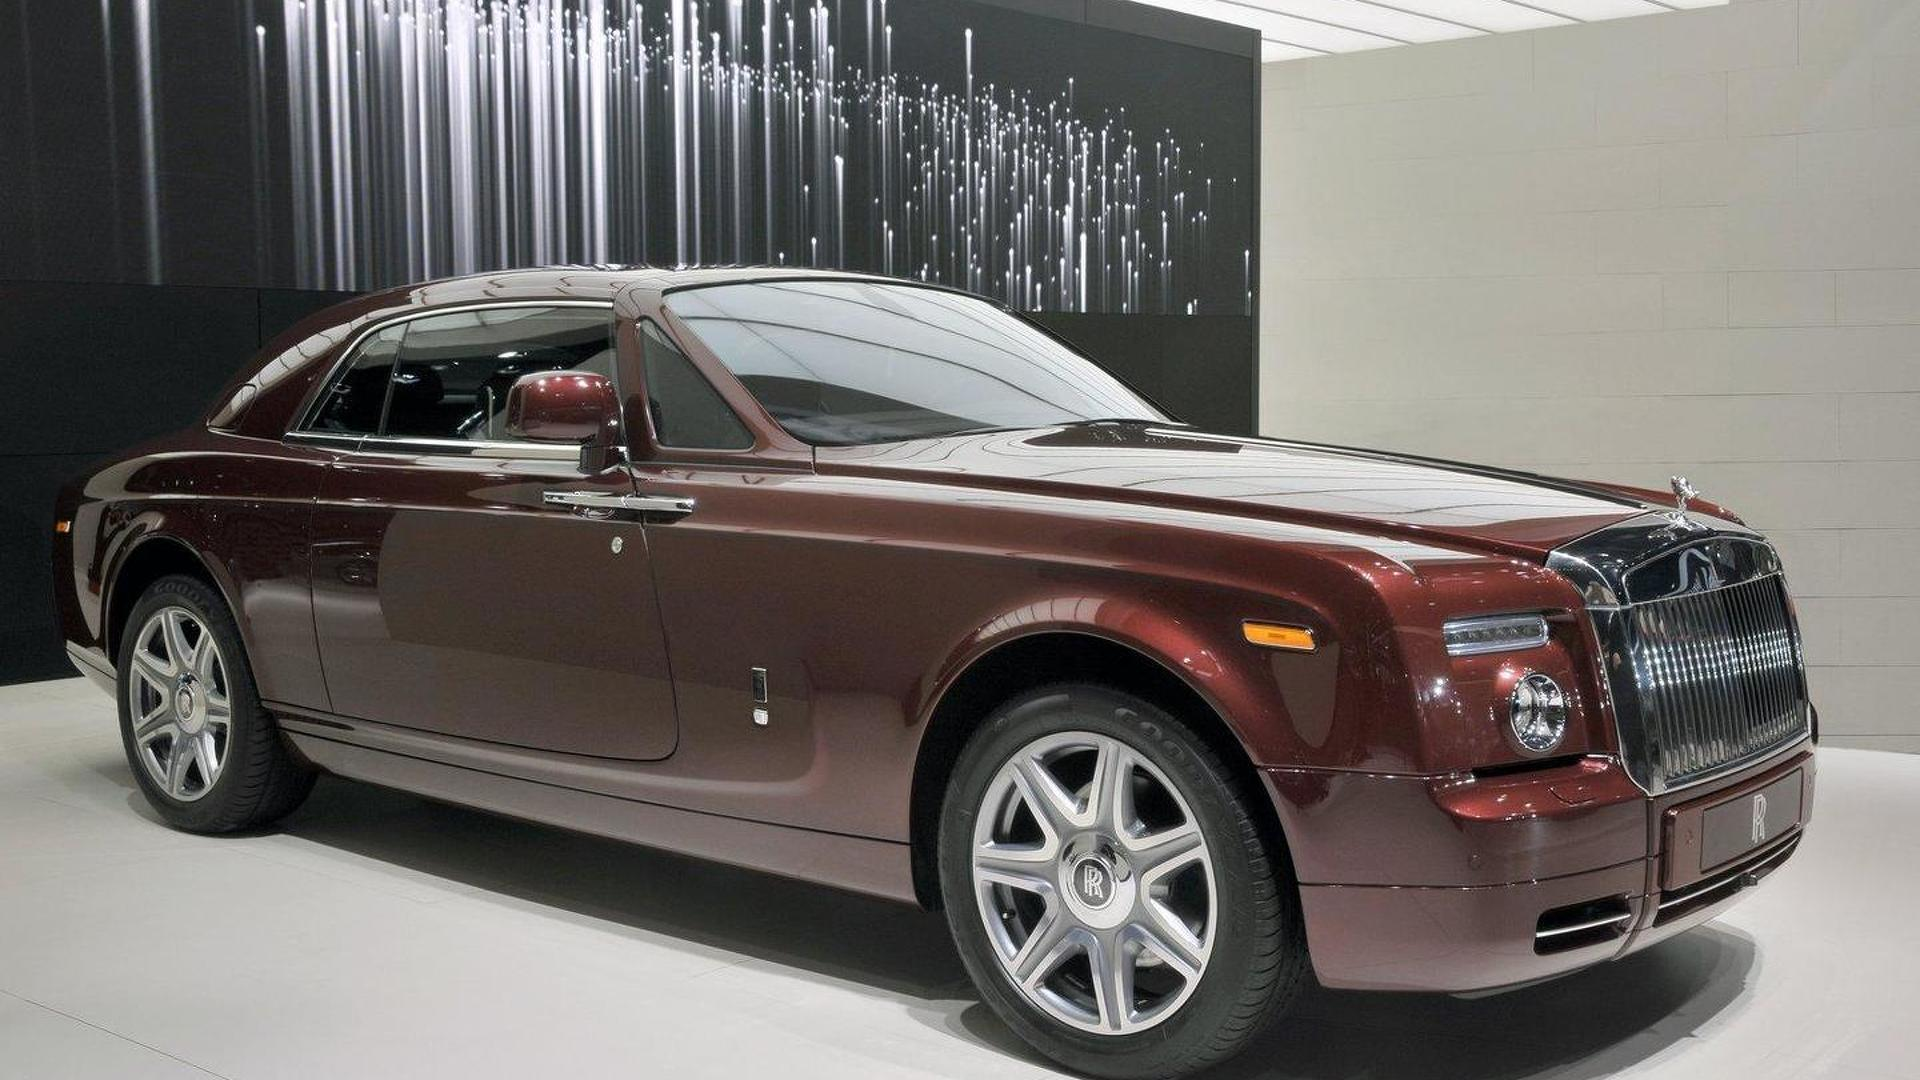 New Rolls-Royce bespoke models unveiled in Paris